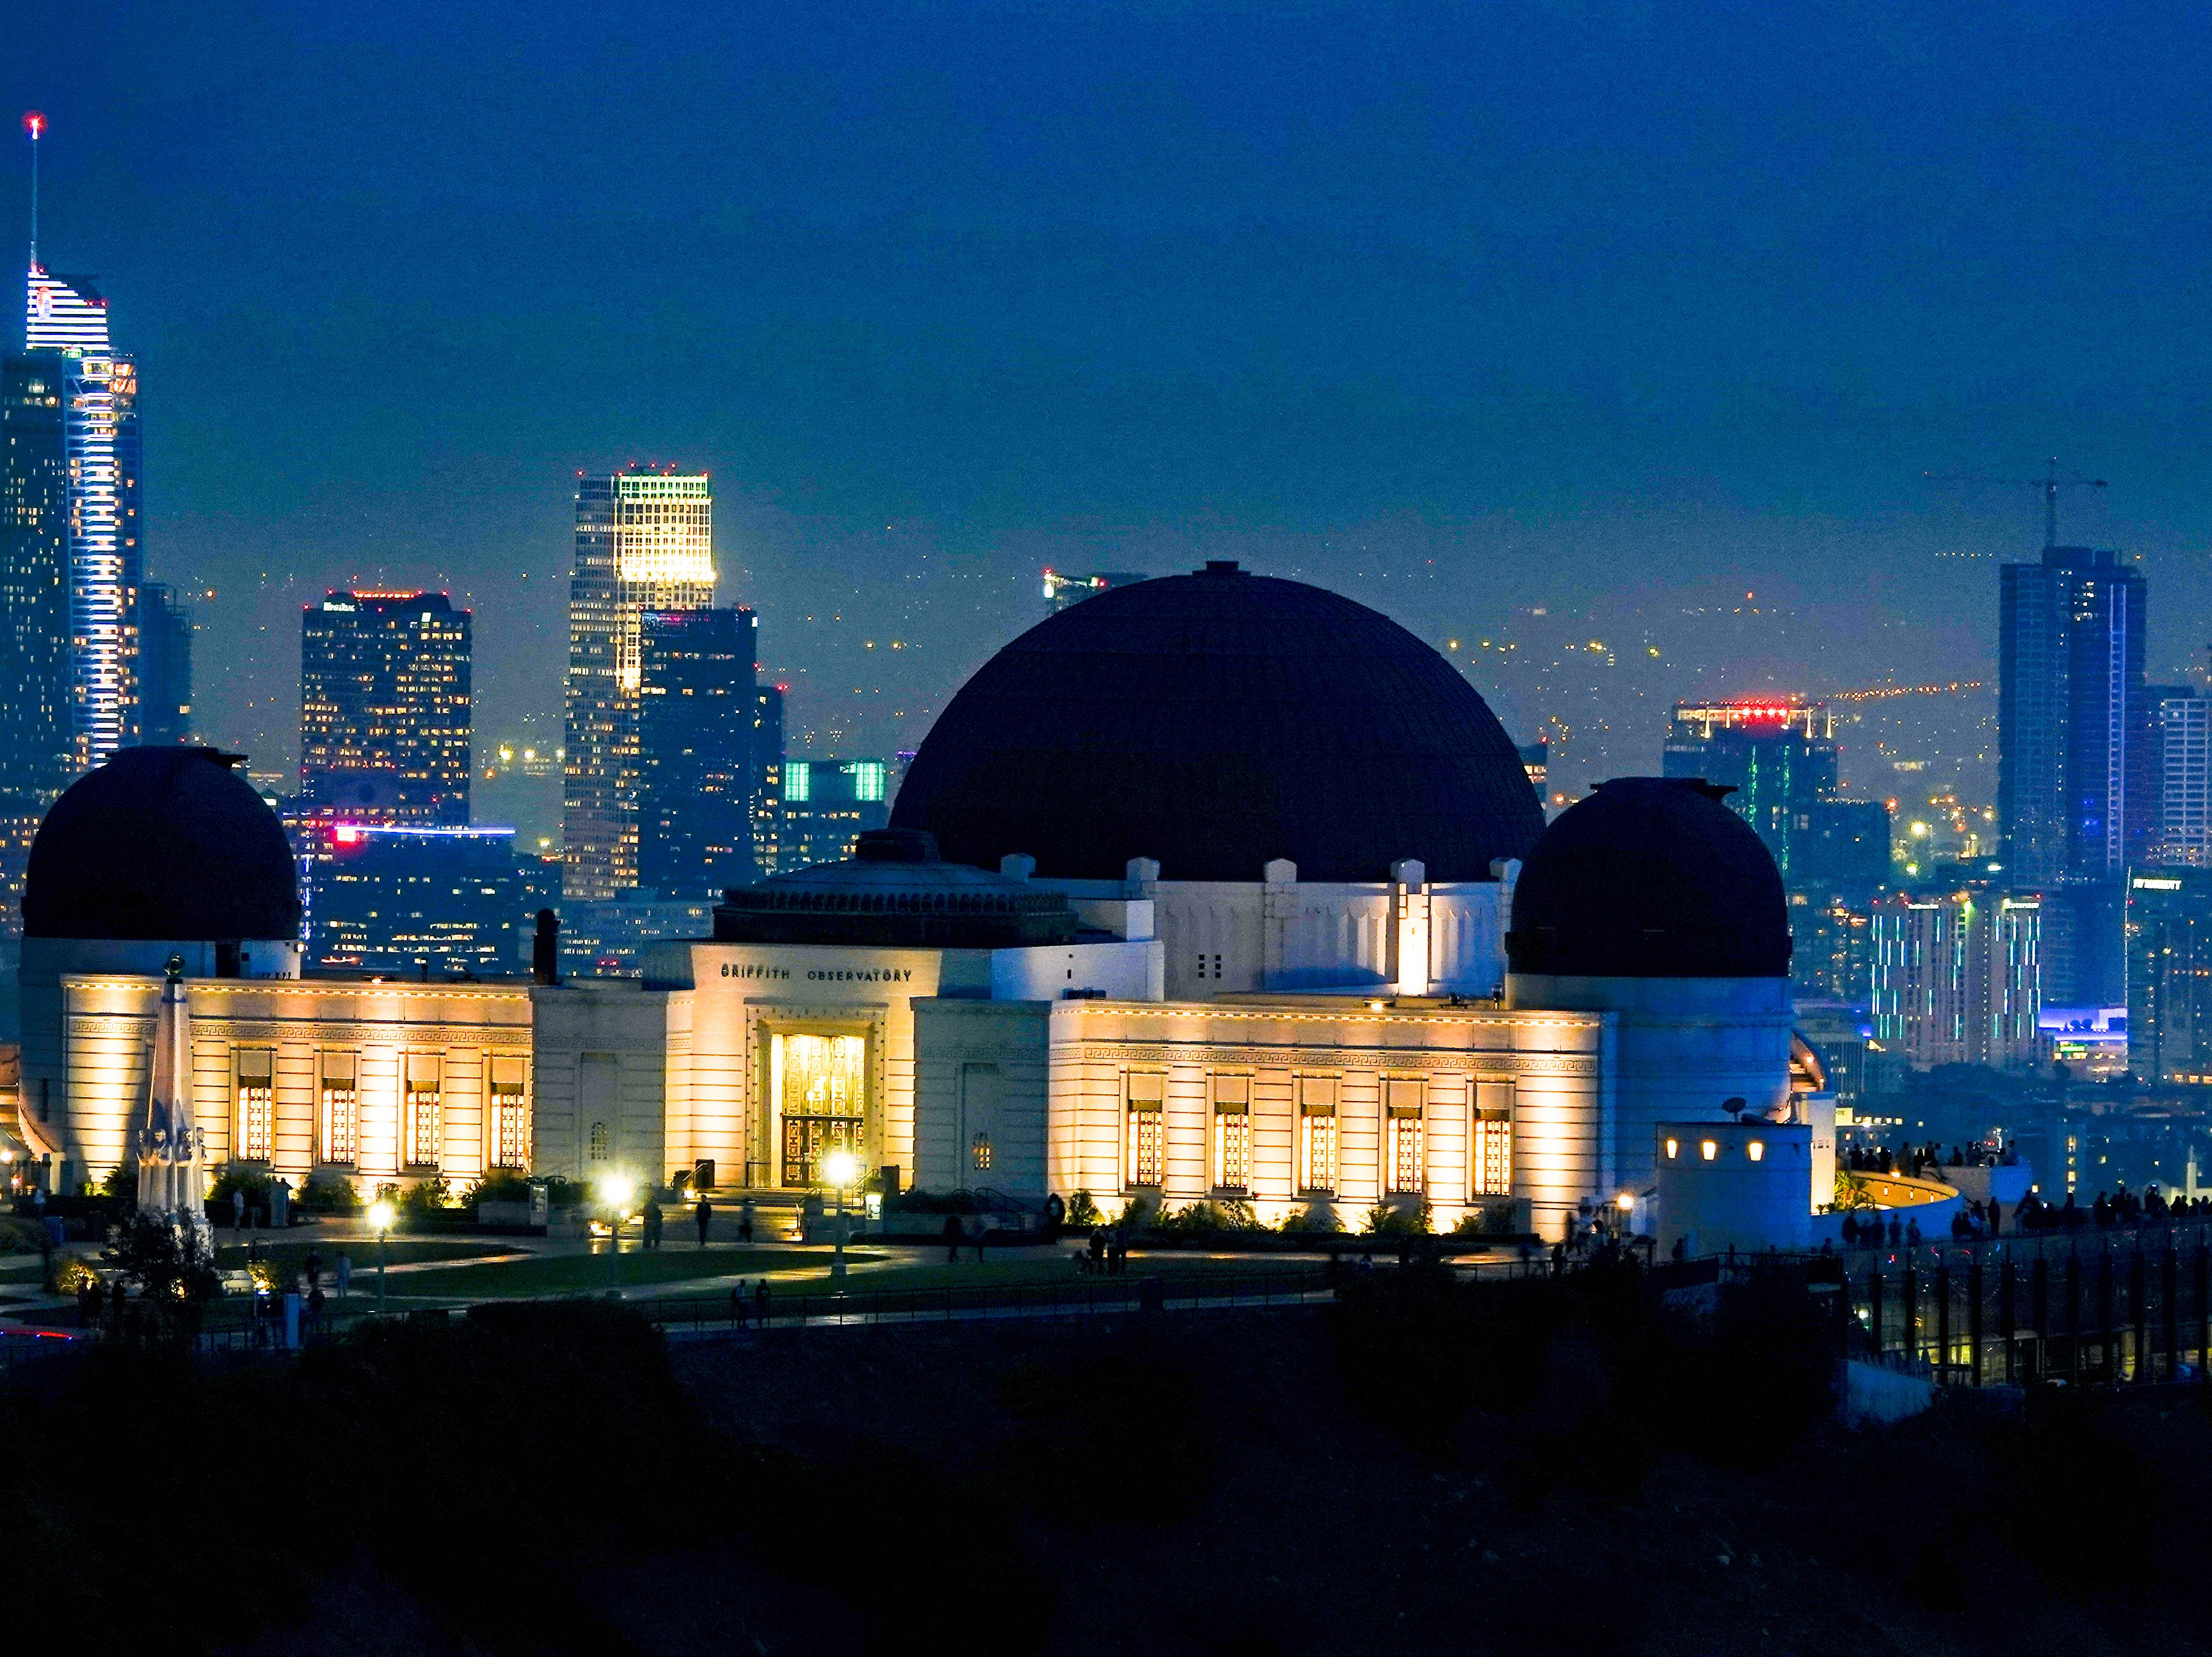 The Observatory by night, just after sunset, as seen from down the way on a hike, with a 600mm lens.